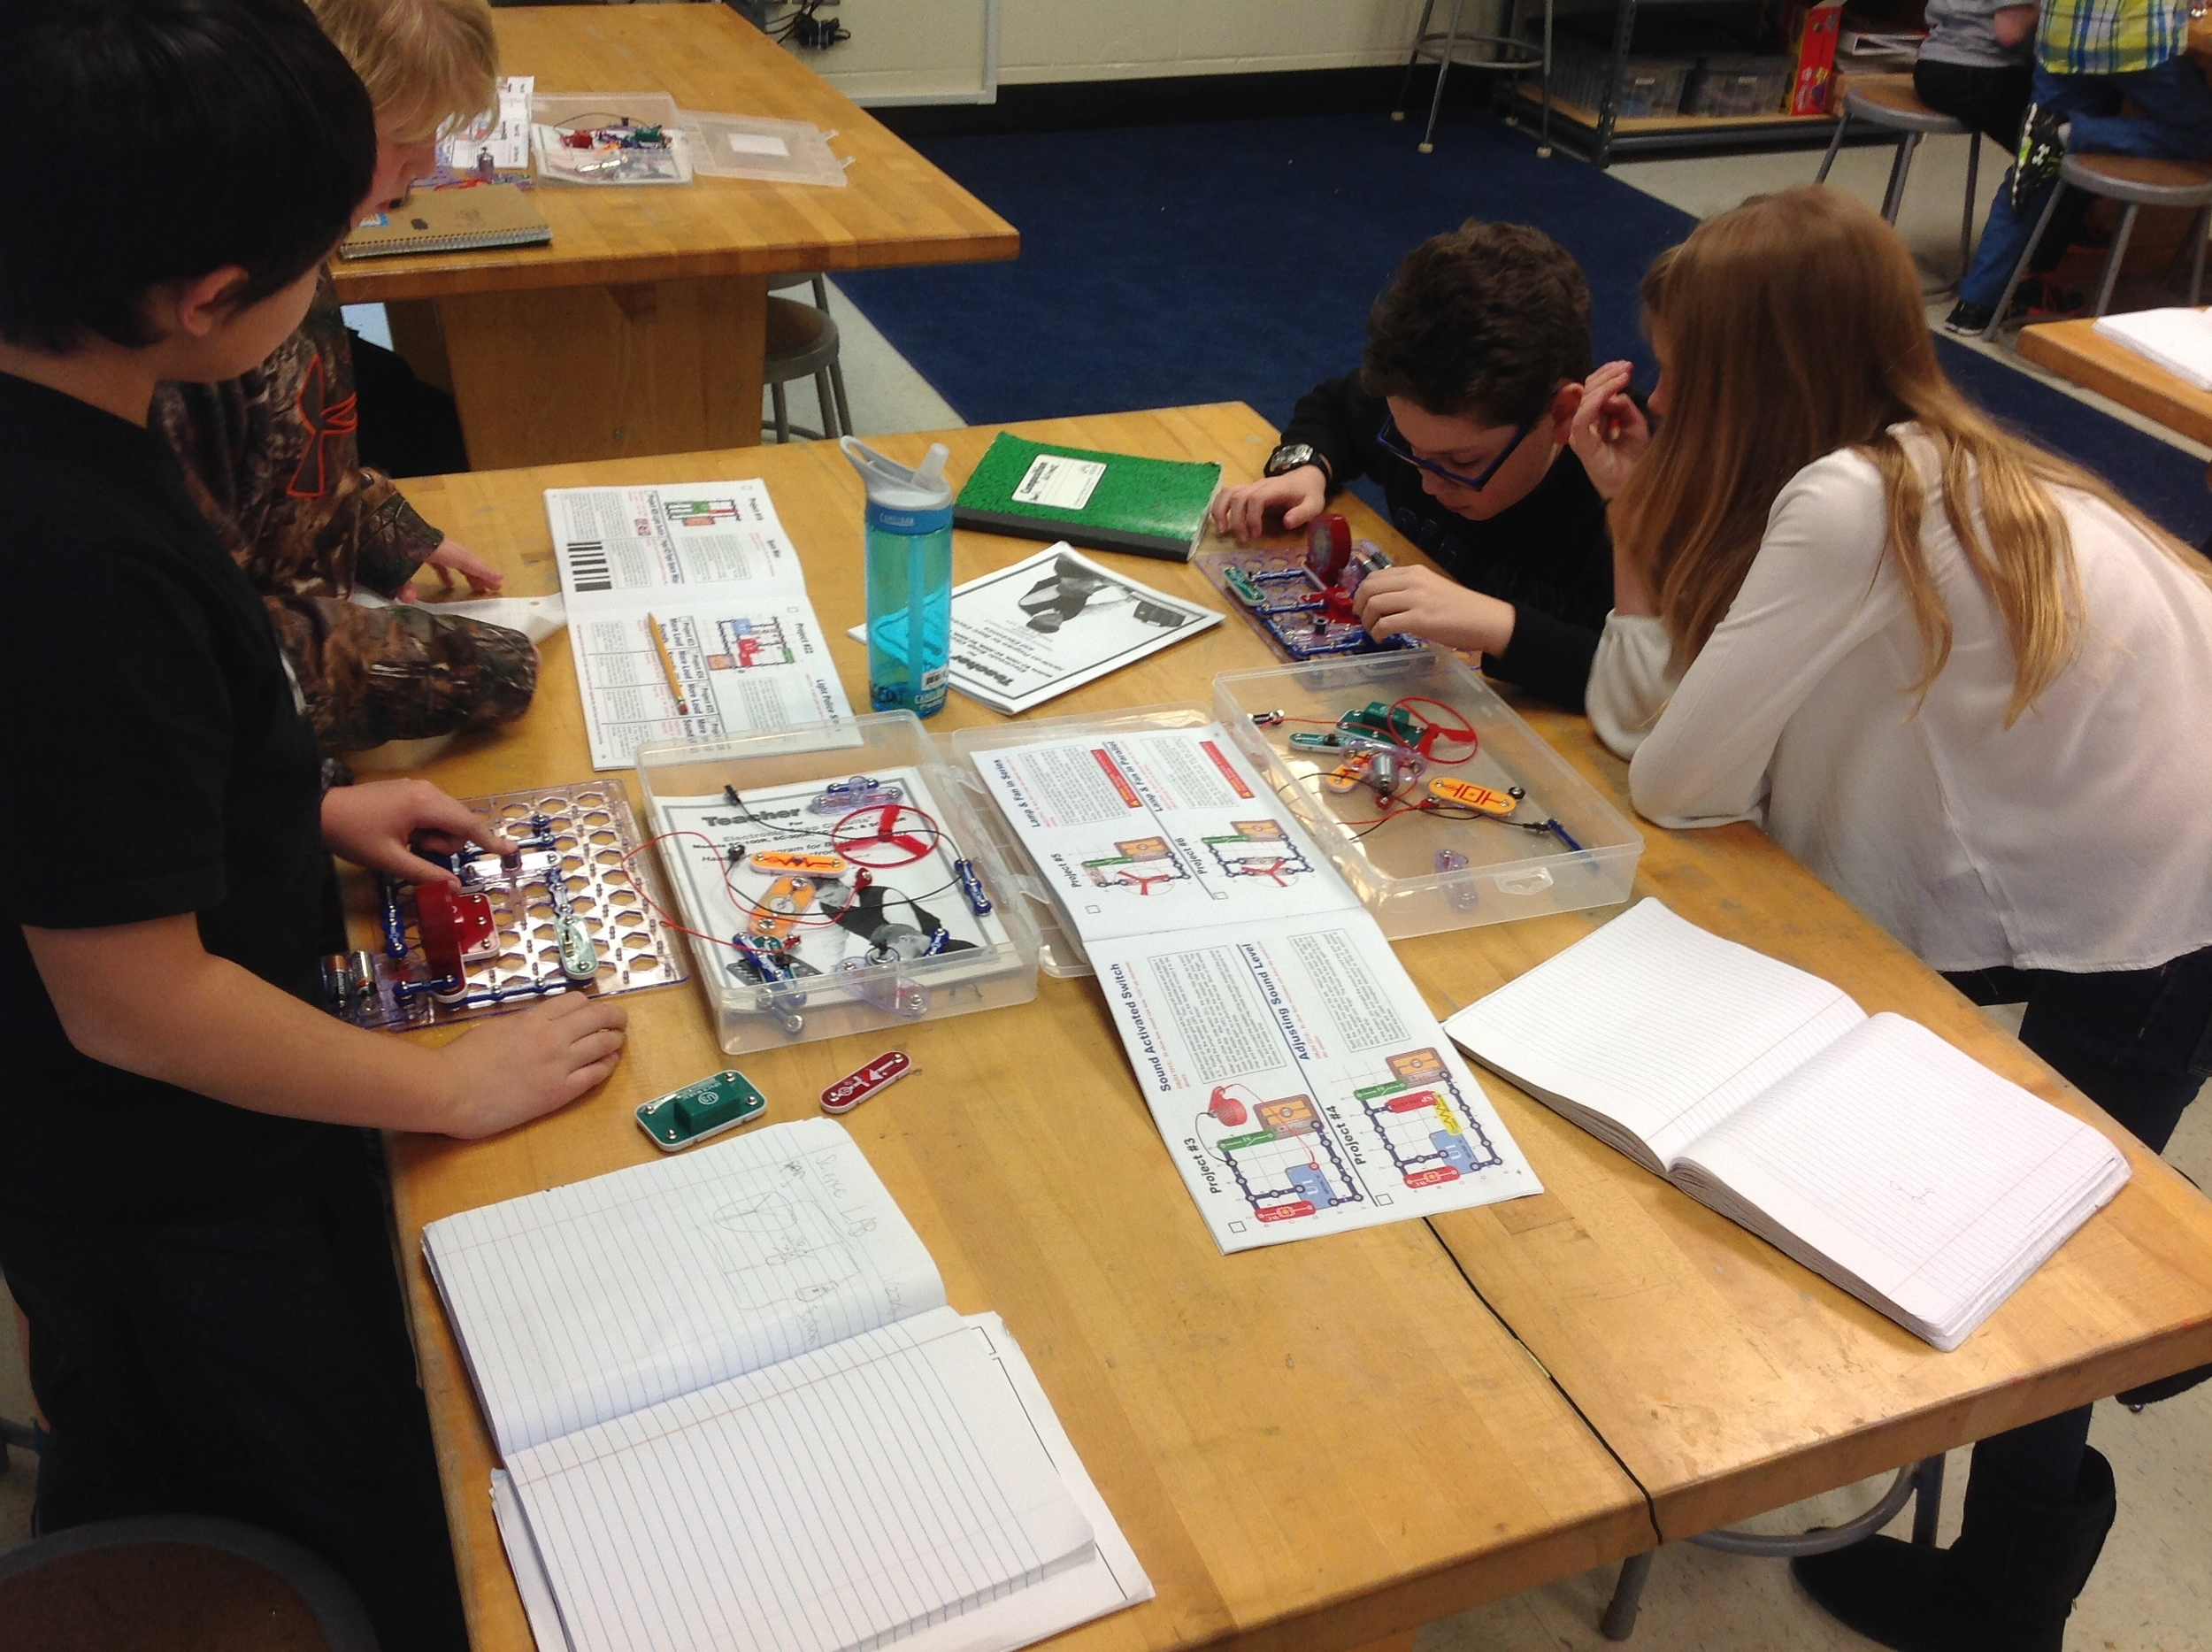 Snap Circuits 3 (Swierski)